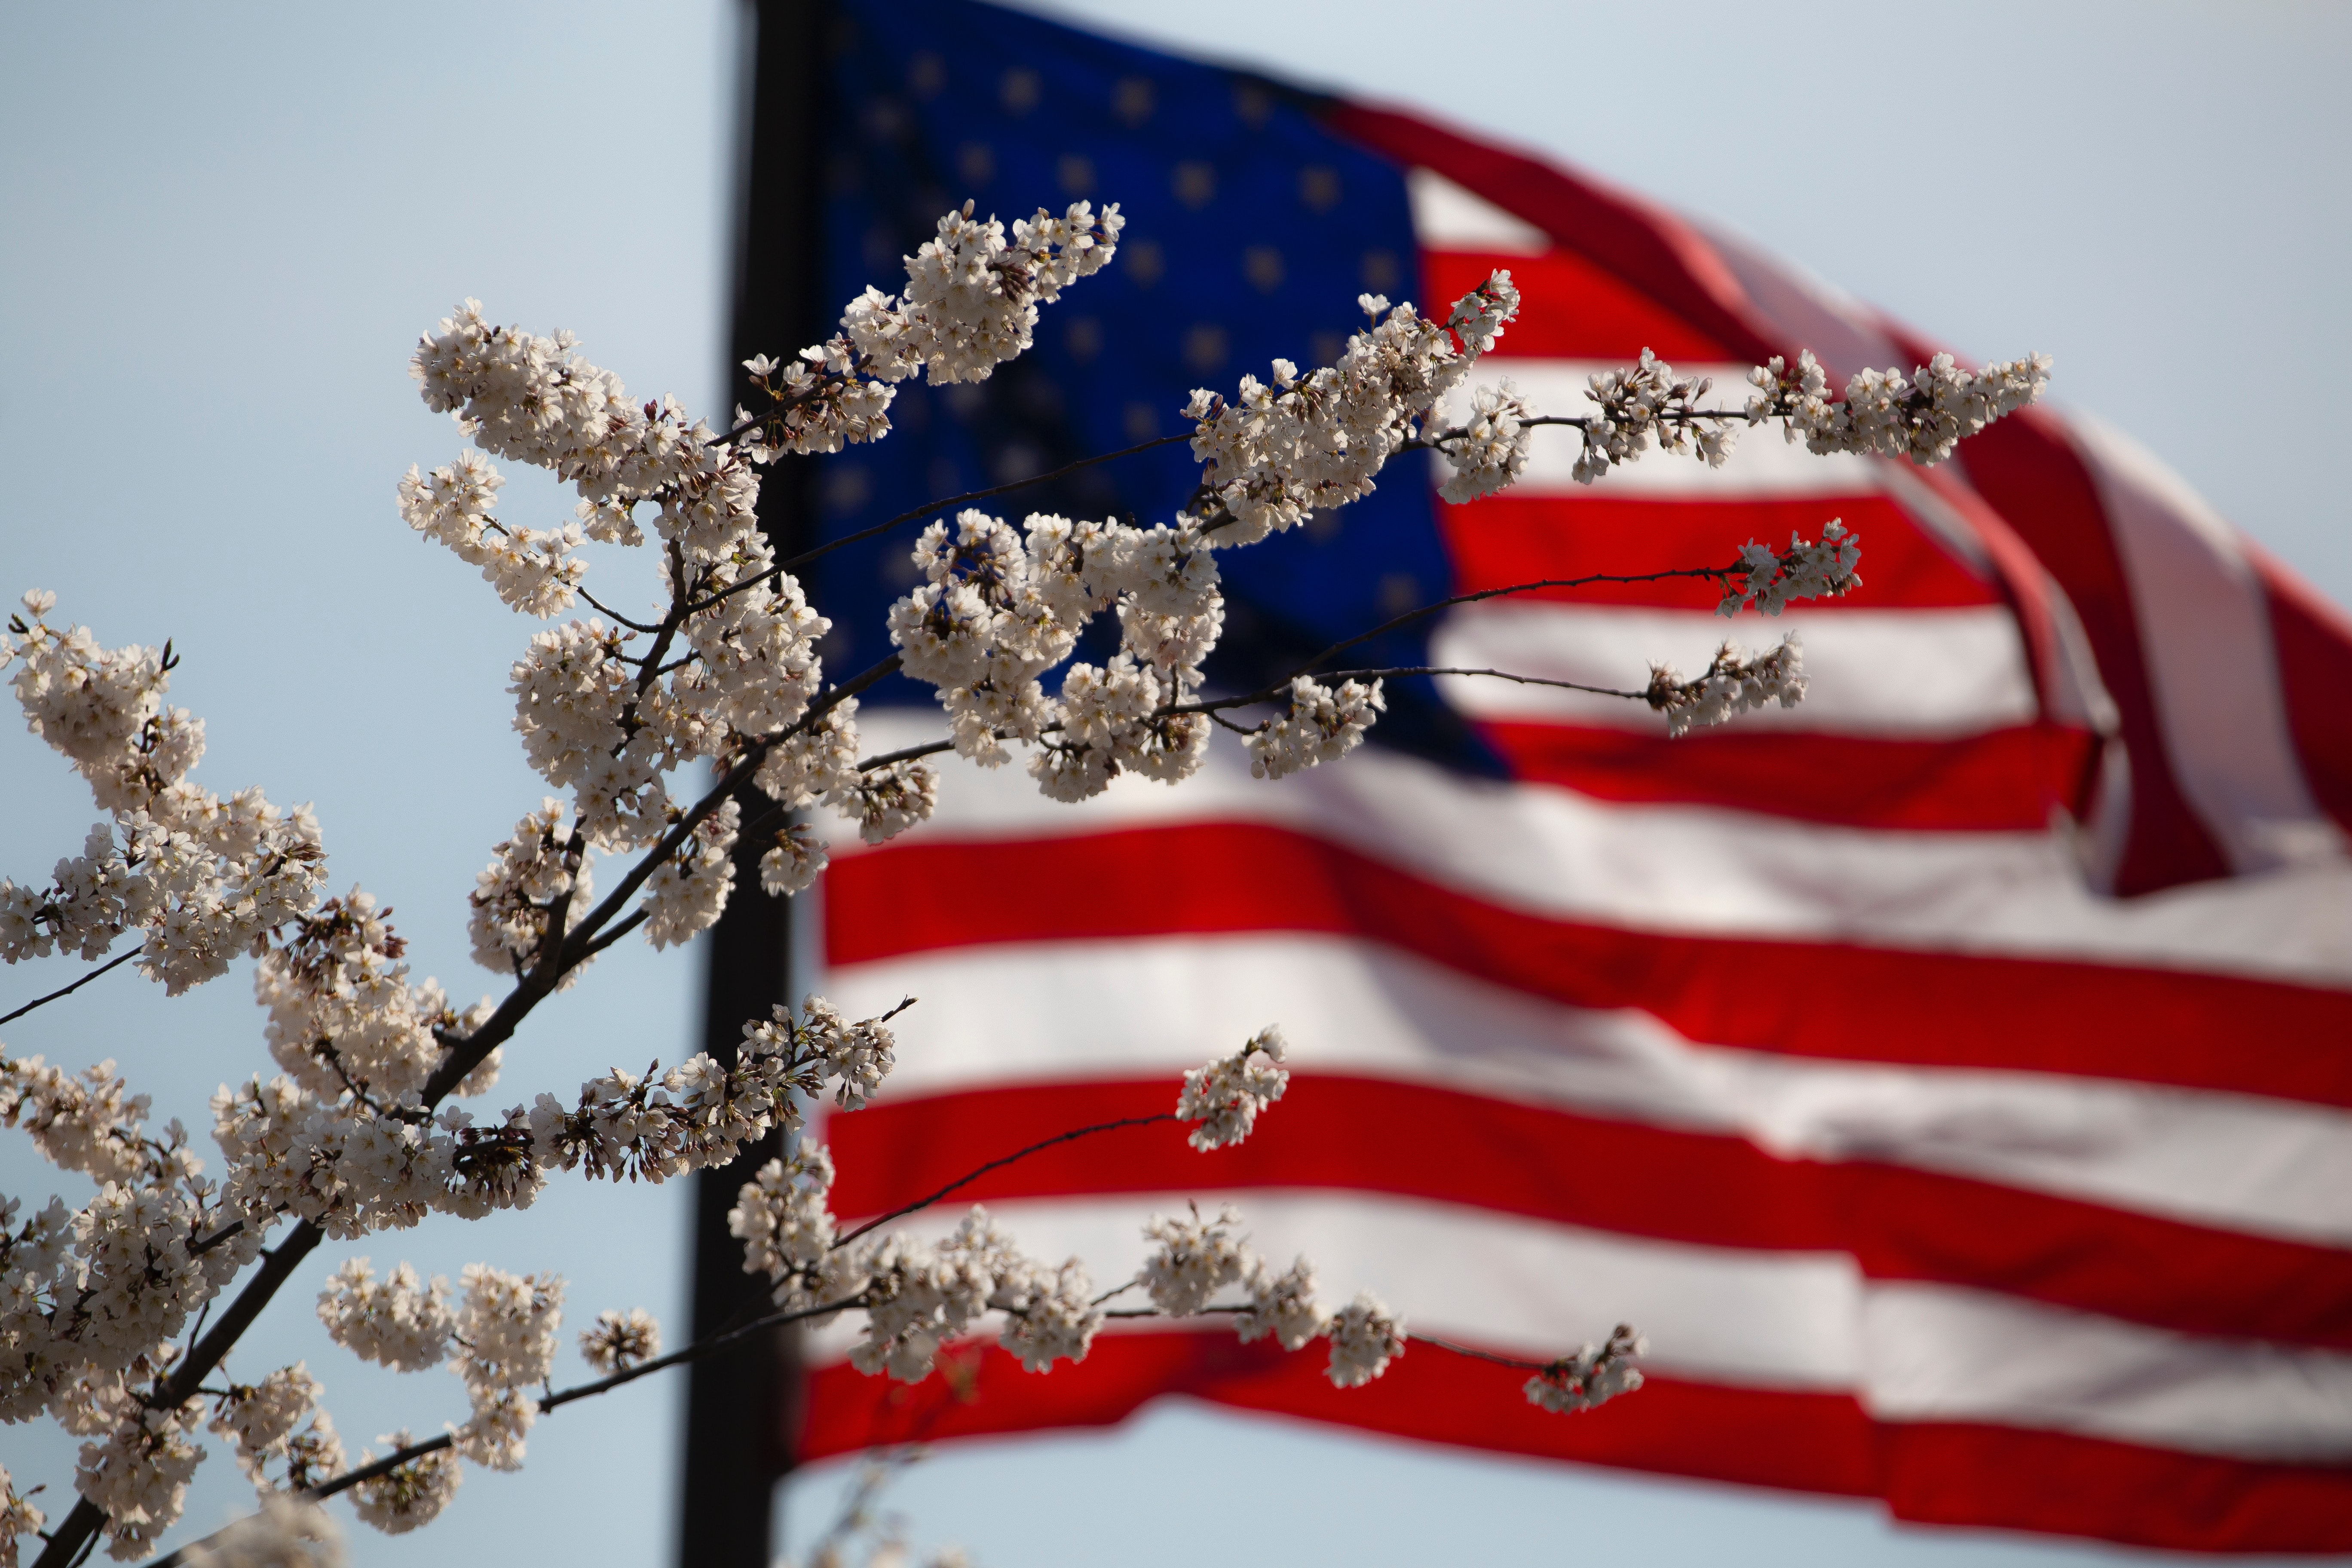 american flag, cherry blossoms, patriotic music